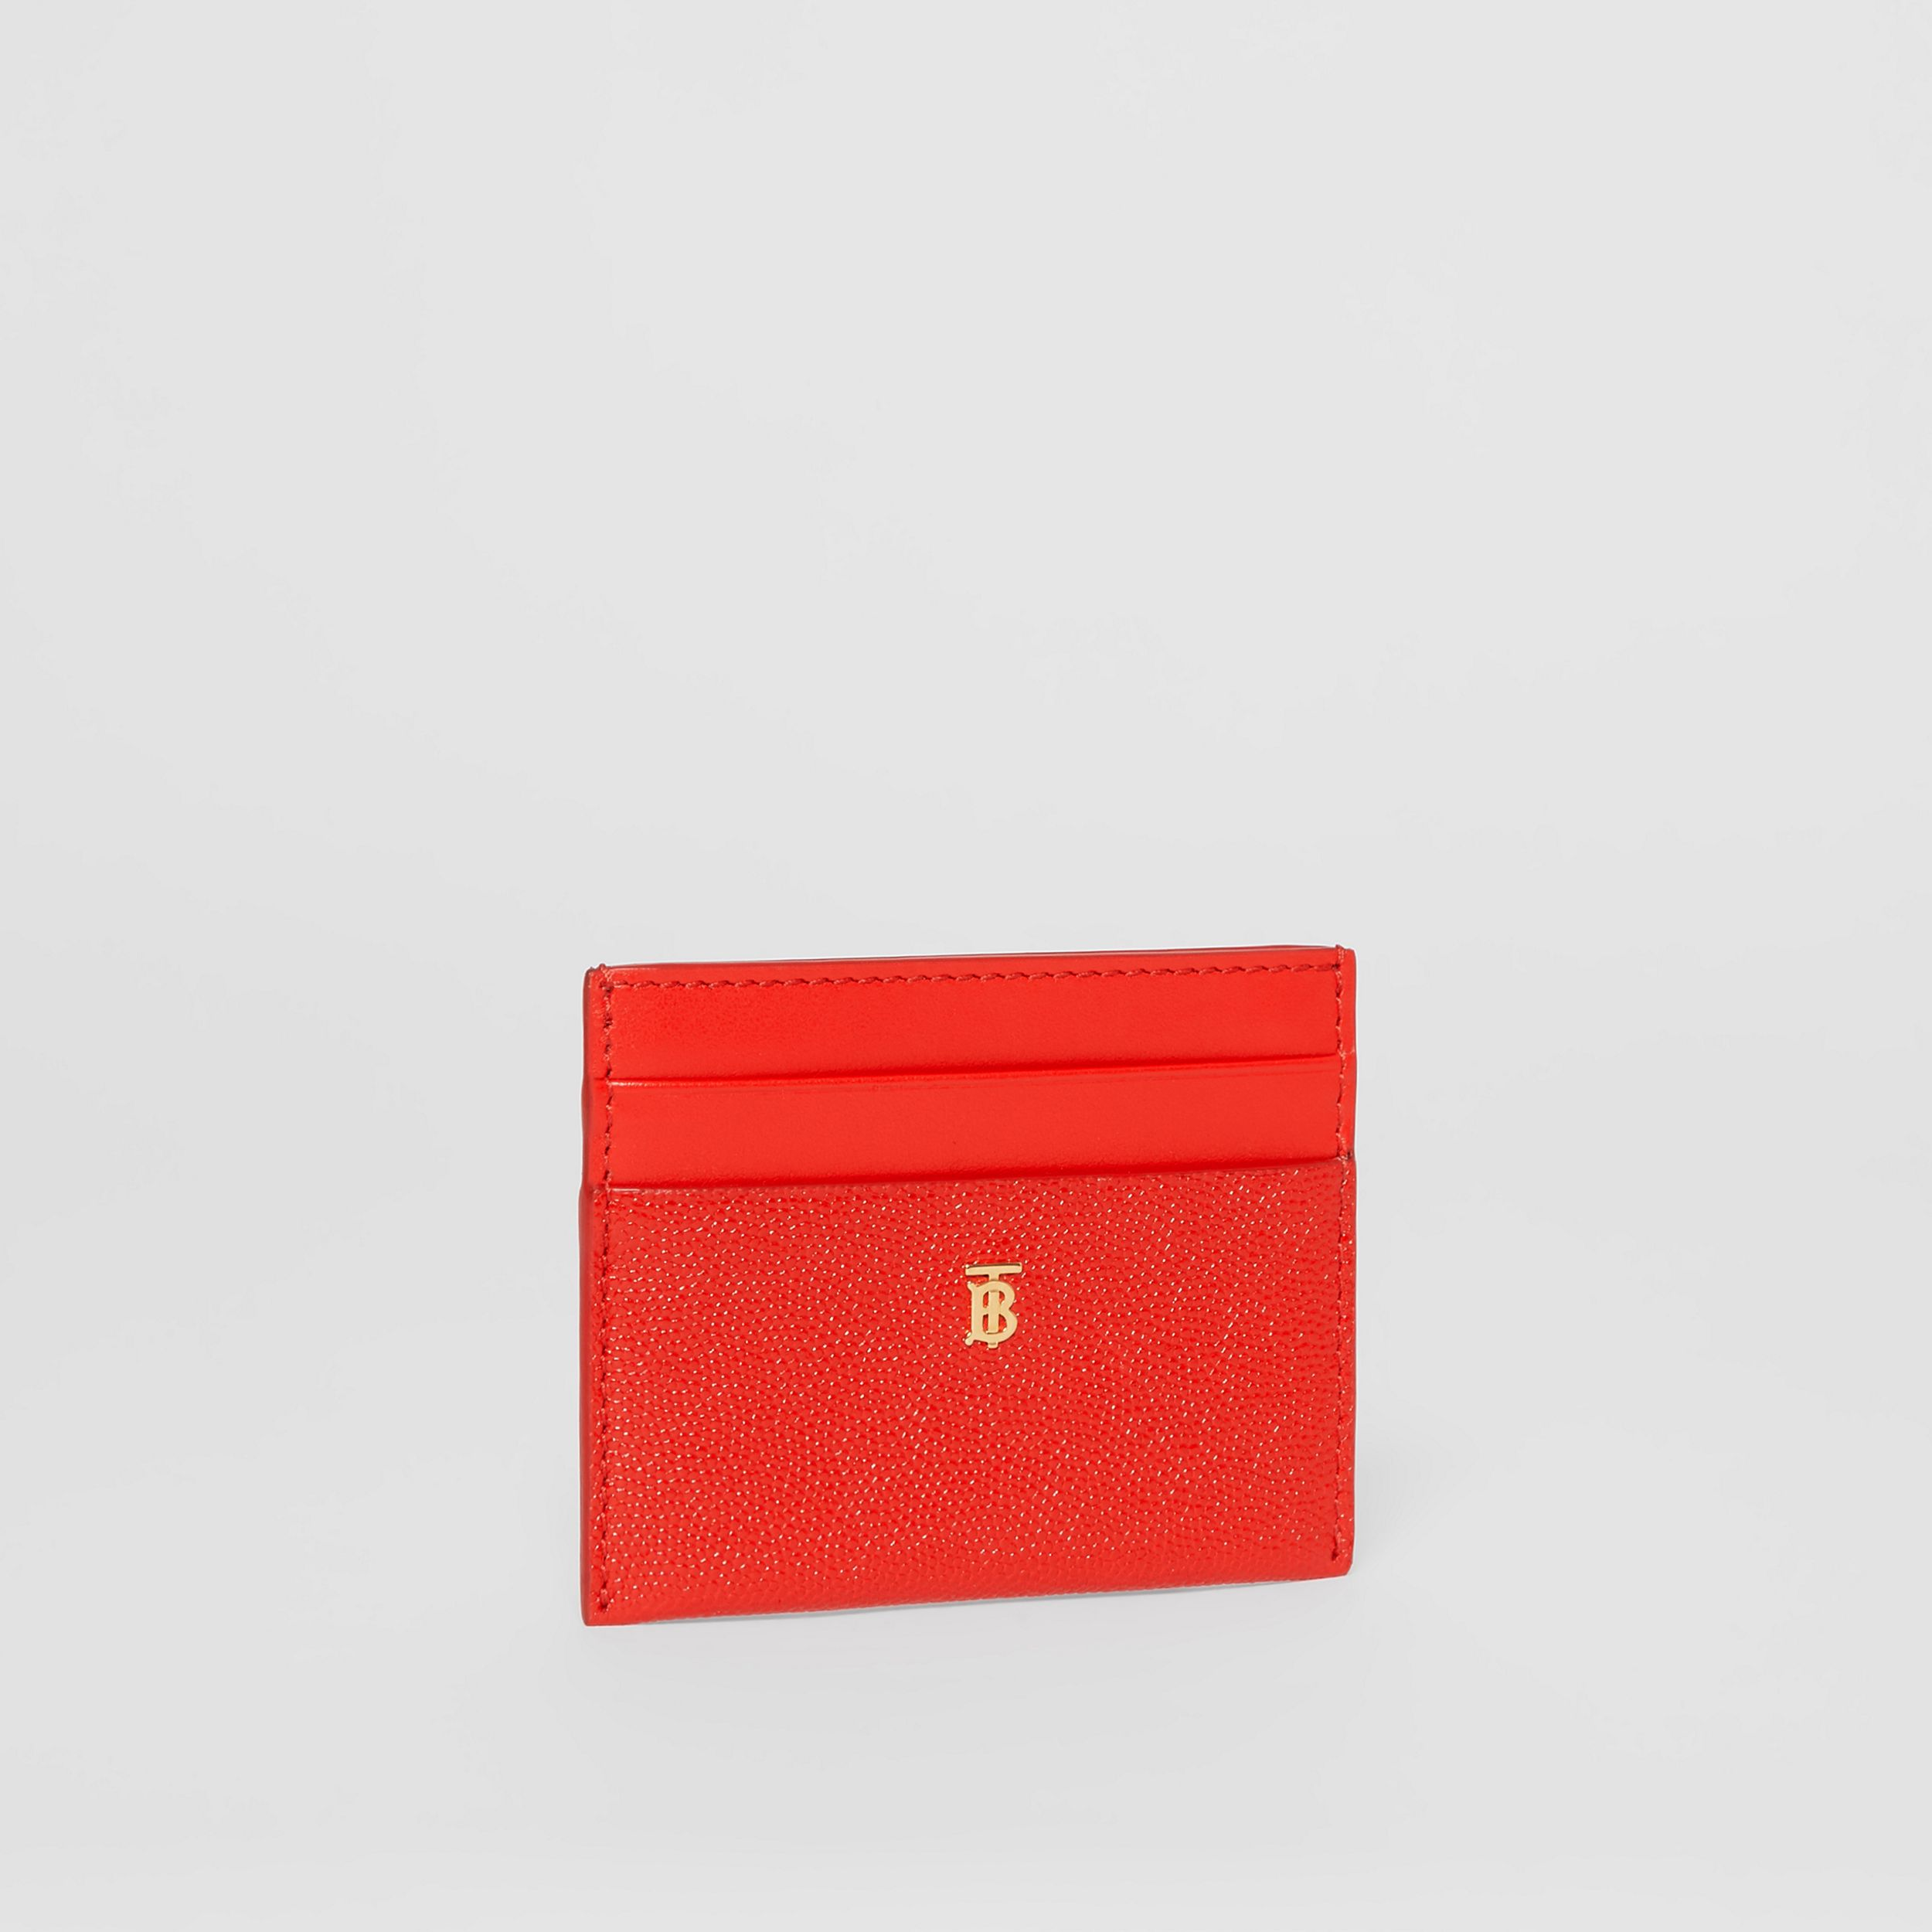 Monogram Motif Leather Card Case in Bright Red - Women | Burberry - 4